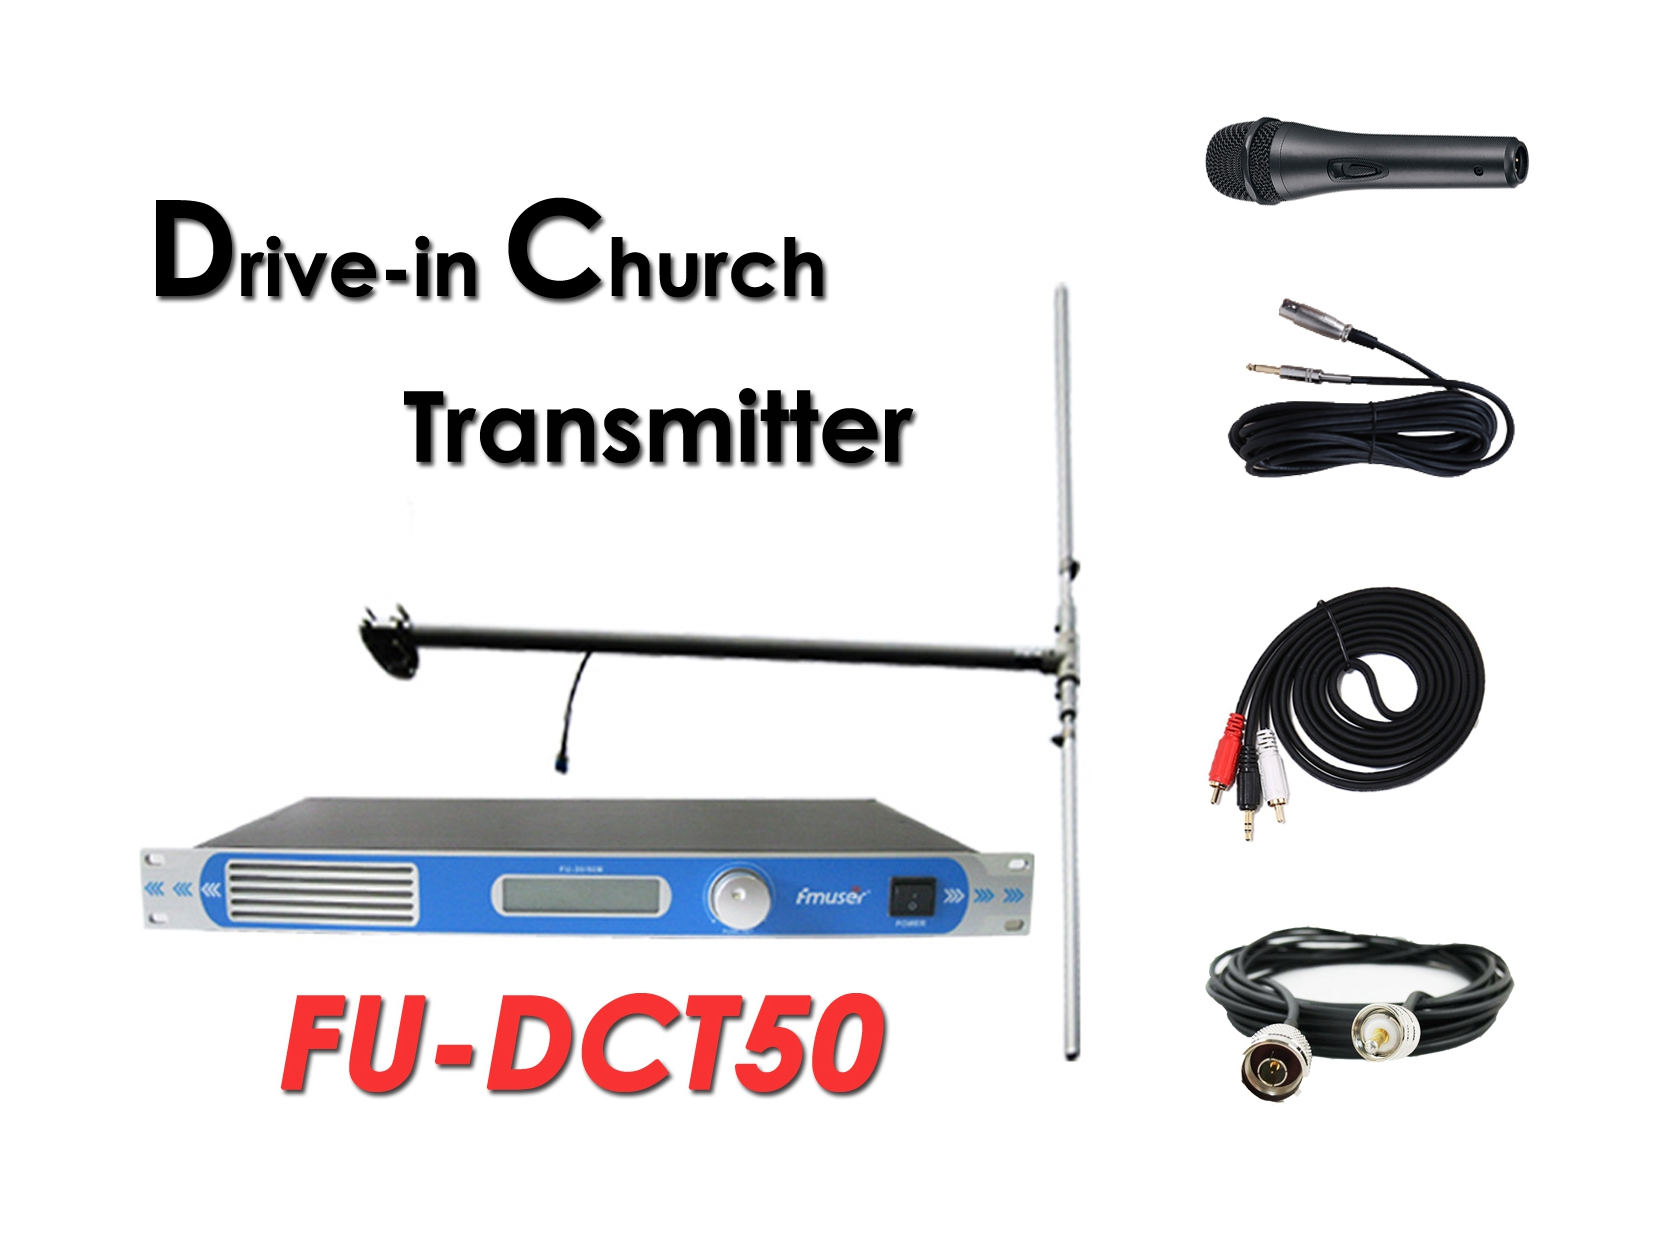 Pakyawan ang Amazon FMUSER FU-DCT50 ​​50Watt FM Transmitter + DP100 Dipole Antenna + Cable + Microphone Itakda Para sa Drive-in Church Service / Cinema / Maraming Paradahan